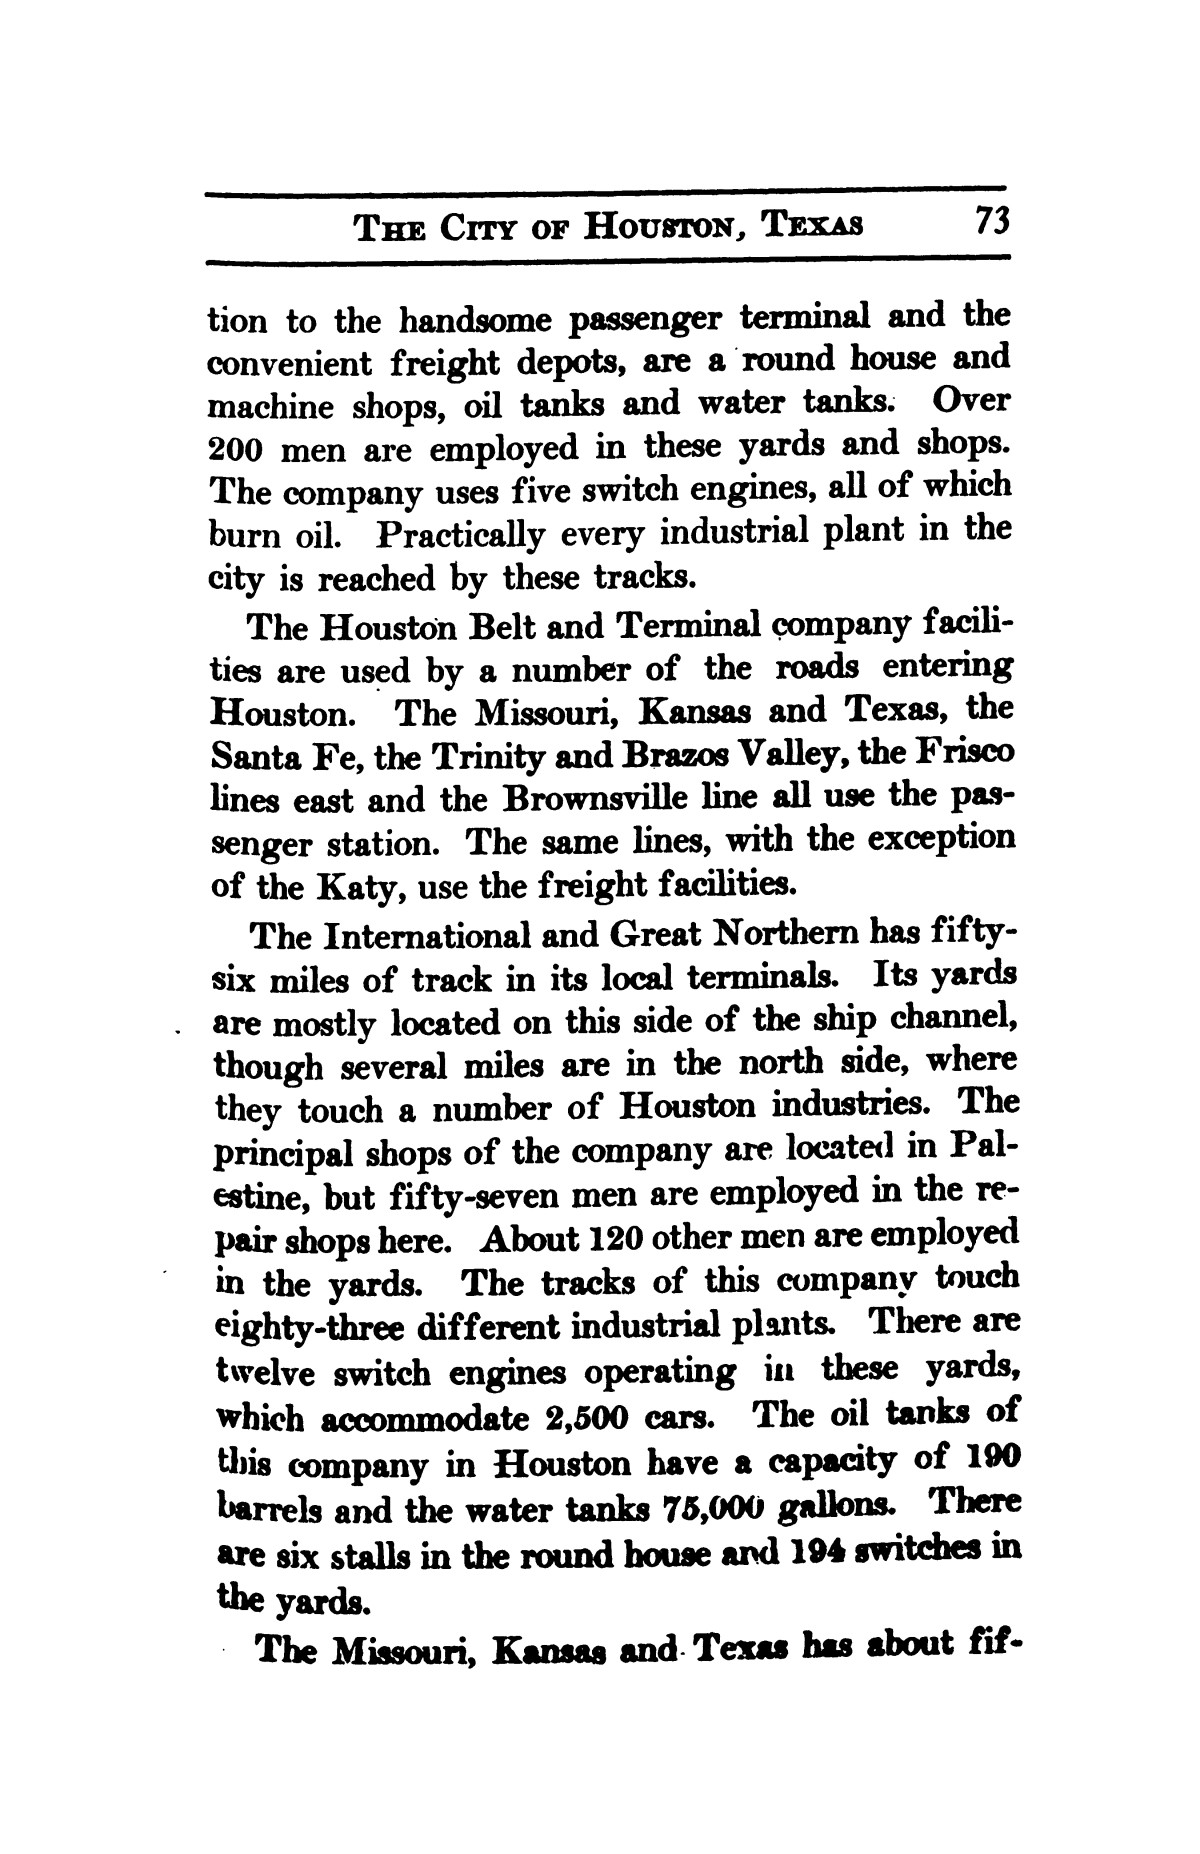 A thumb-nail history of the city of Houston, Texas, from its founding in 1836 to the year 1912                                                                                                      73